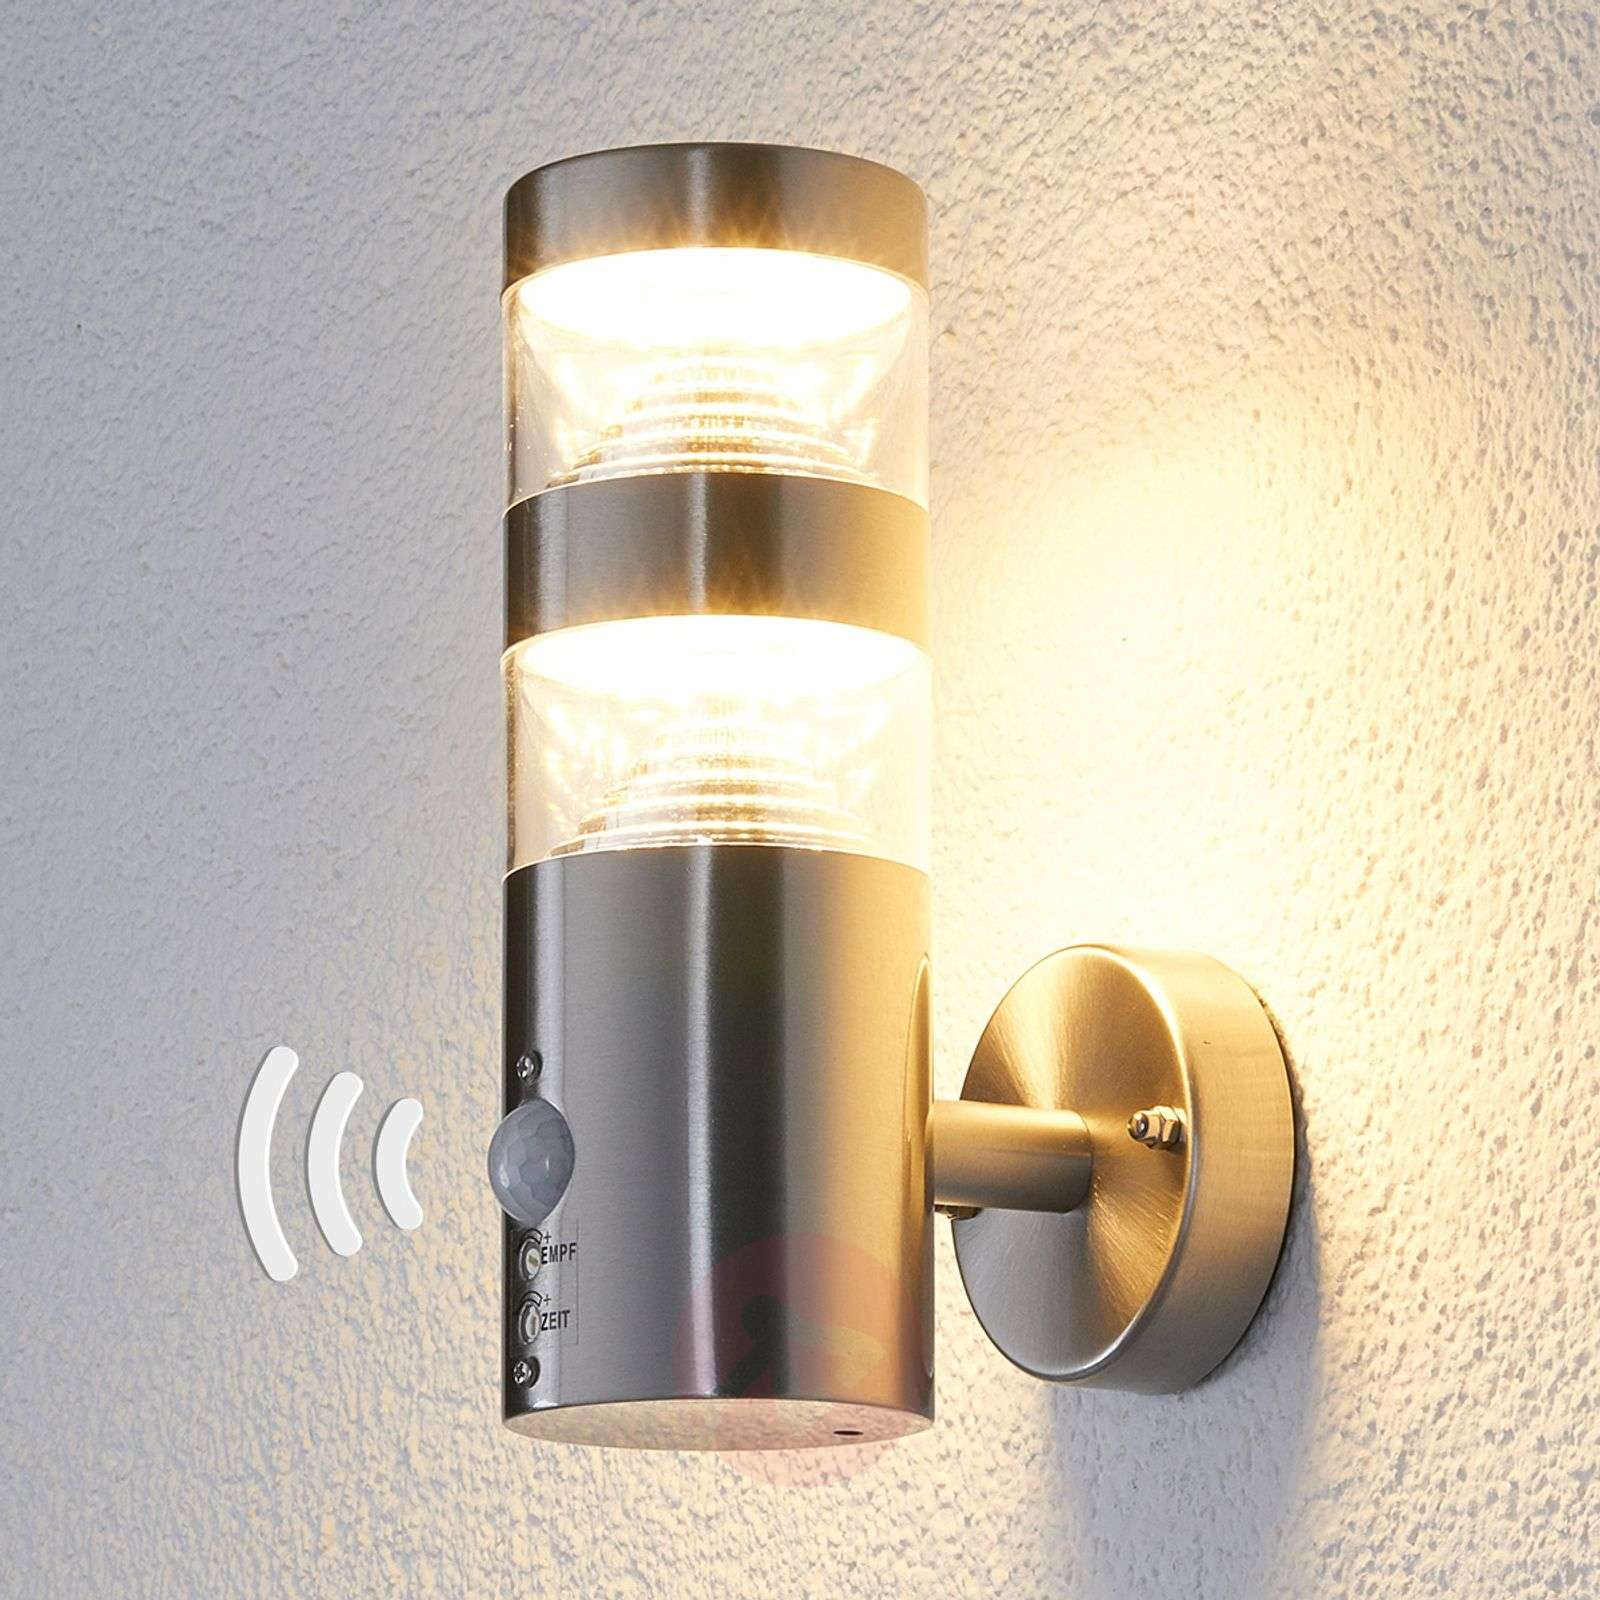 Led outdoor wall light lanea with motion sensor for Exterior wall light with motion sensor